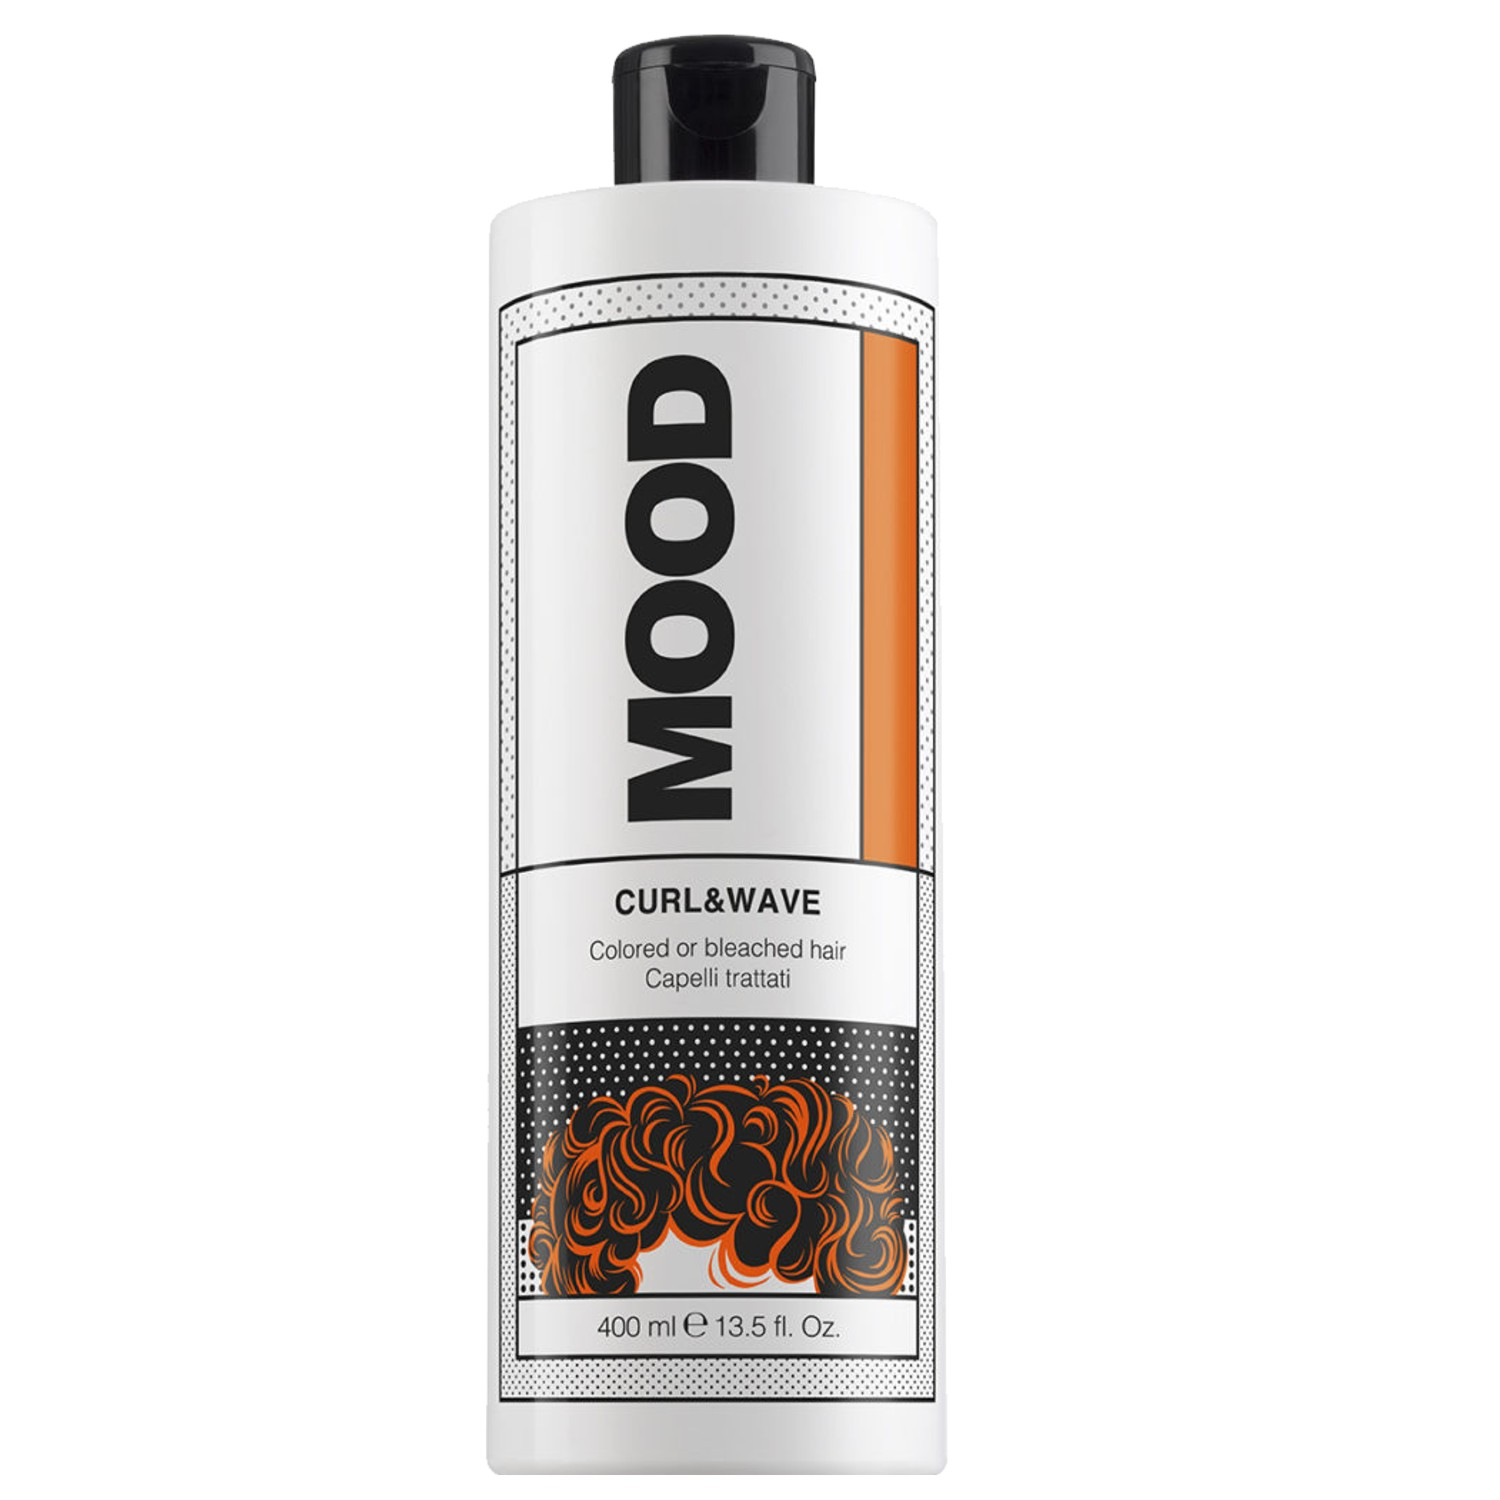 MOOD Curl & Wave Colored or Bleached Hair 400 ml